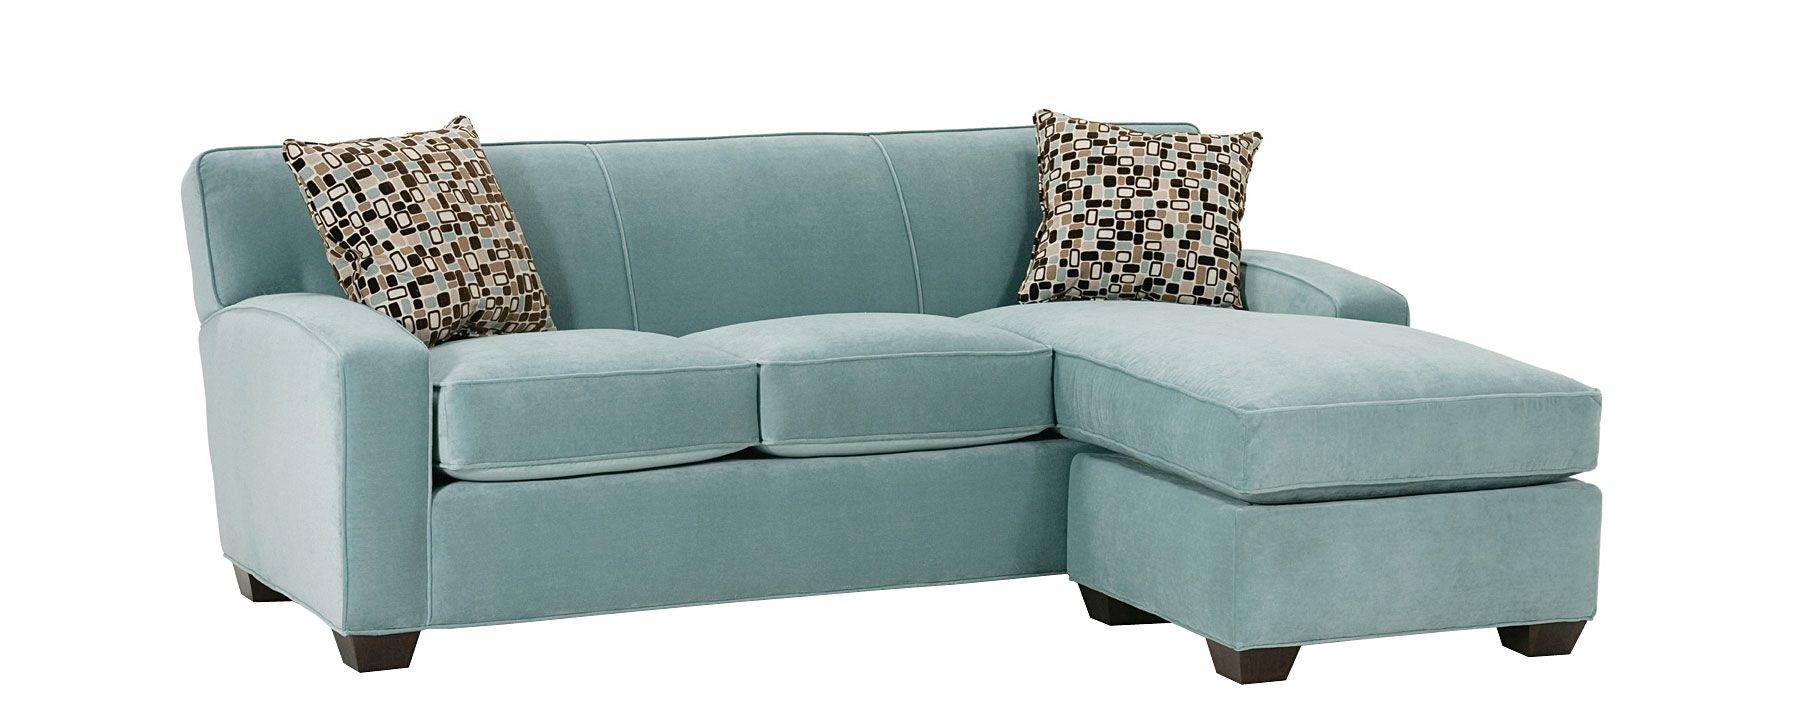 Mice Small Contemporary Sectional Sofa Couch With Chaise